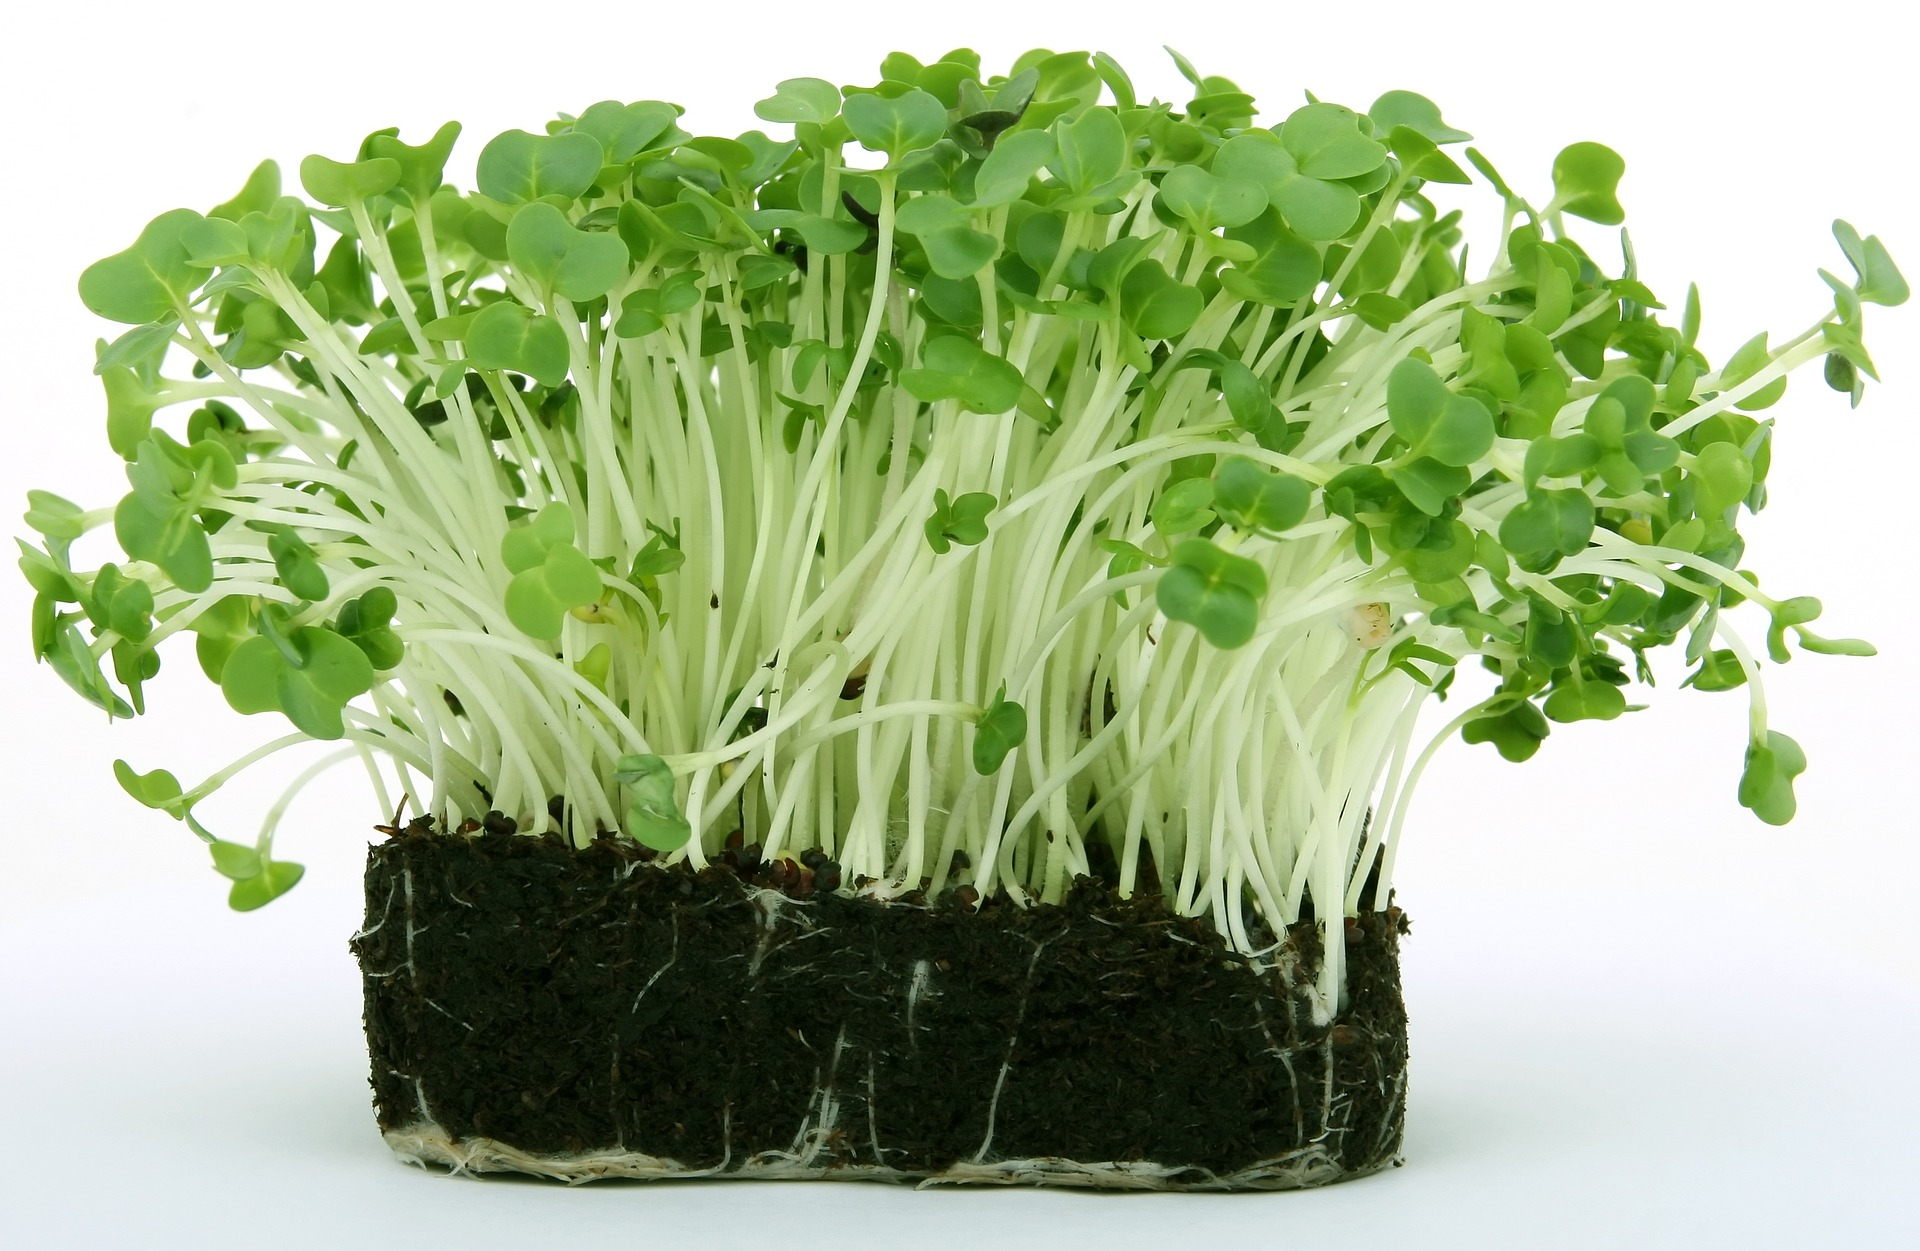 plant roots on soil